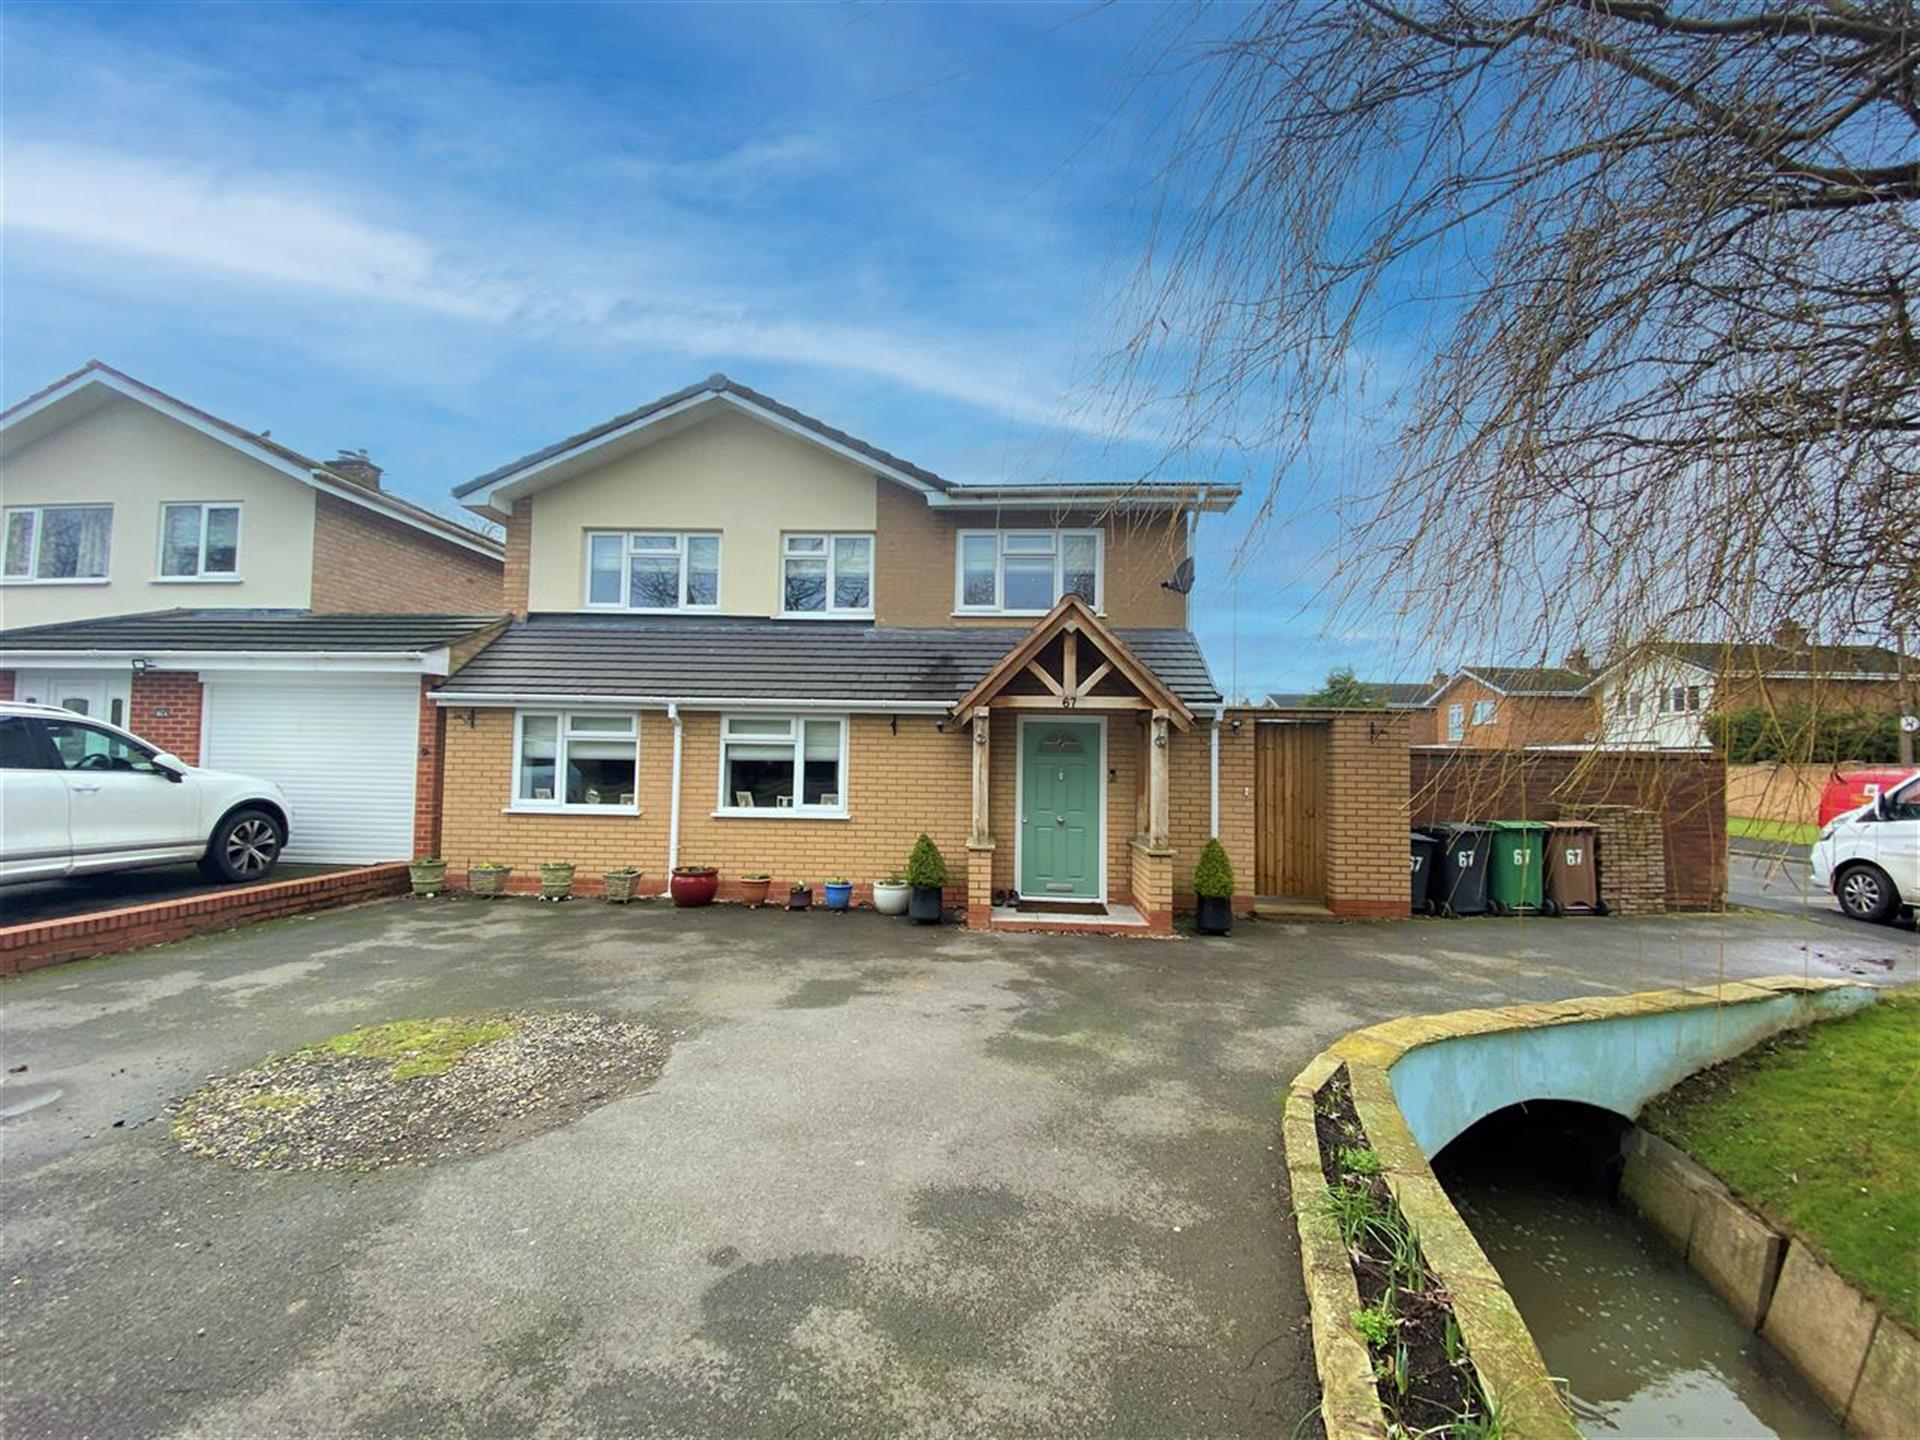 4 Bedroom Link Detached House For Sale - Main Picture